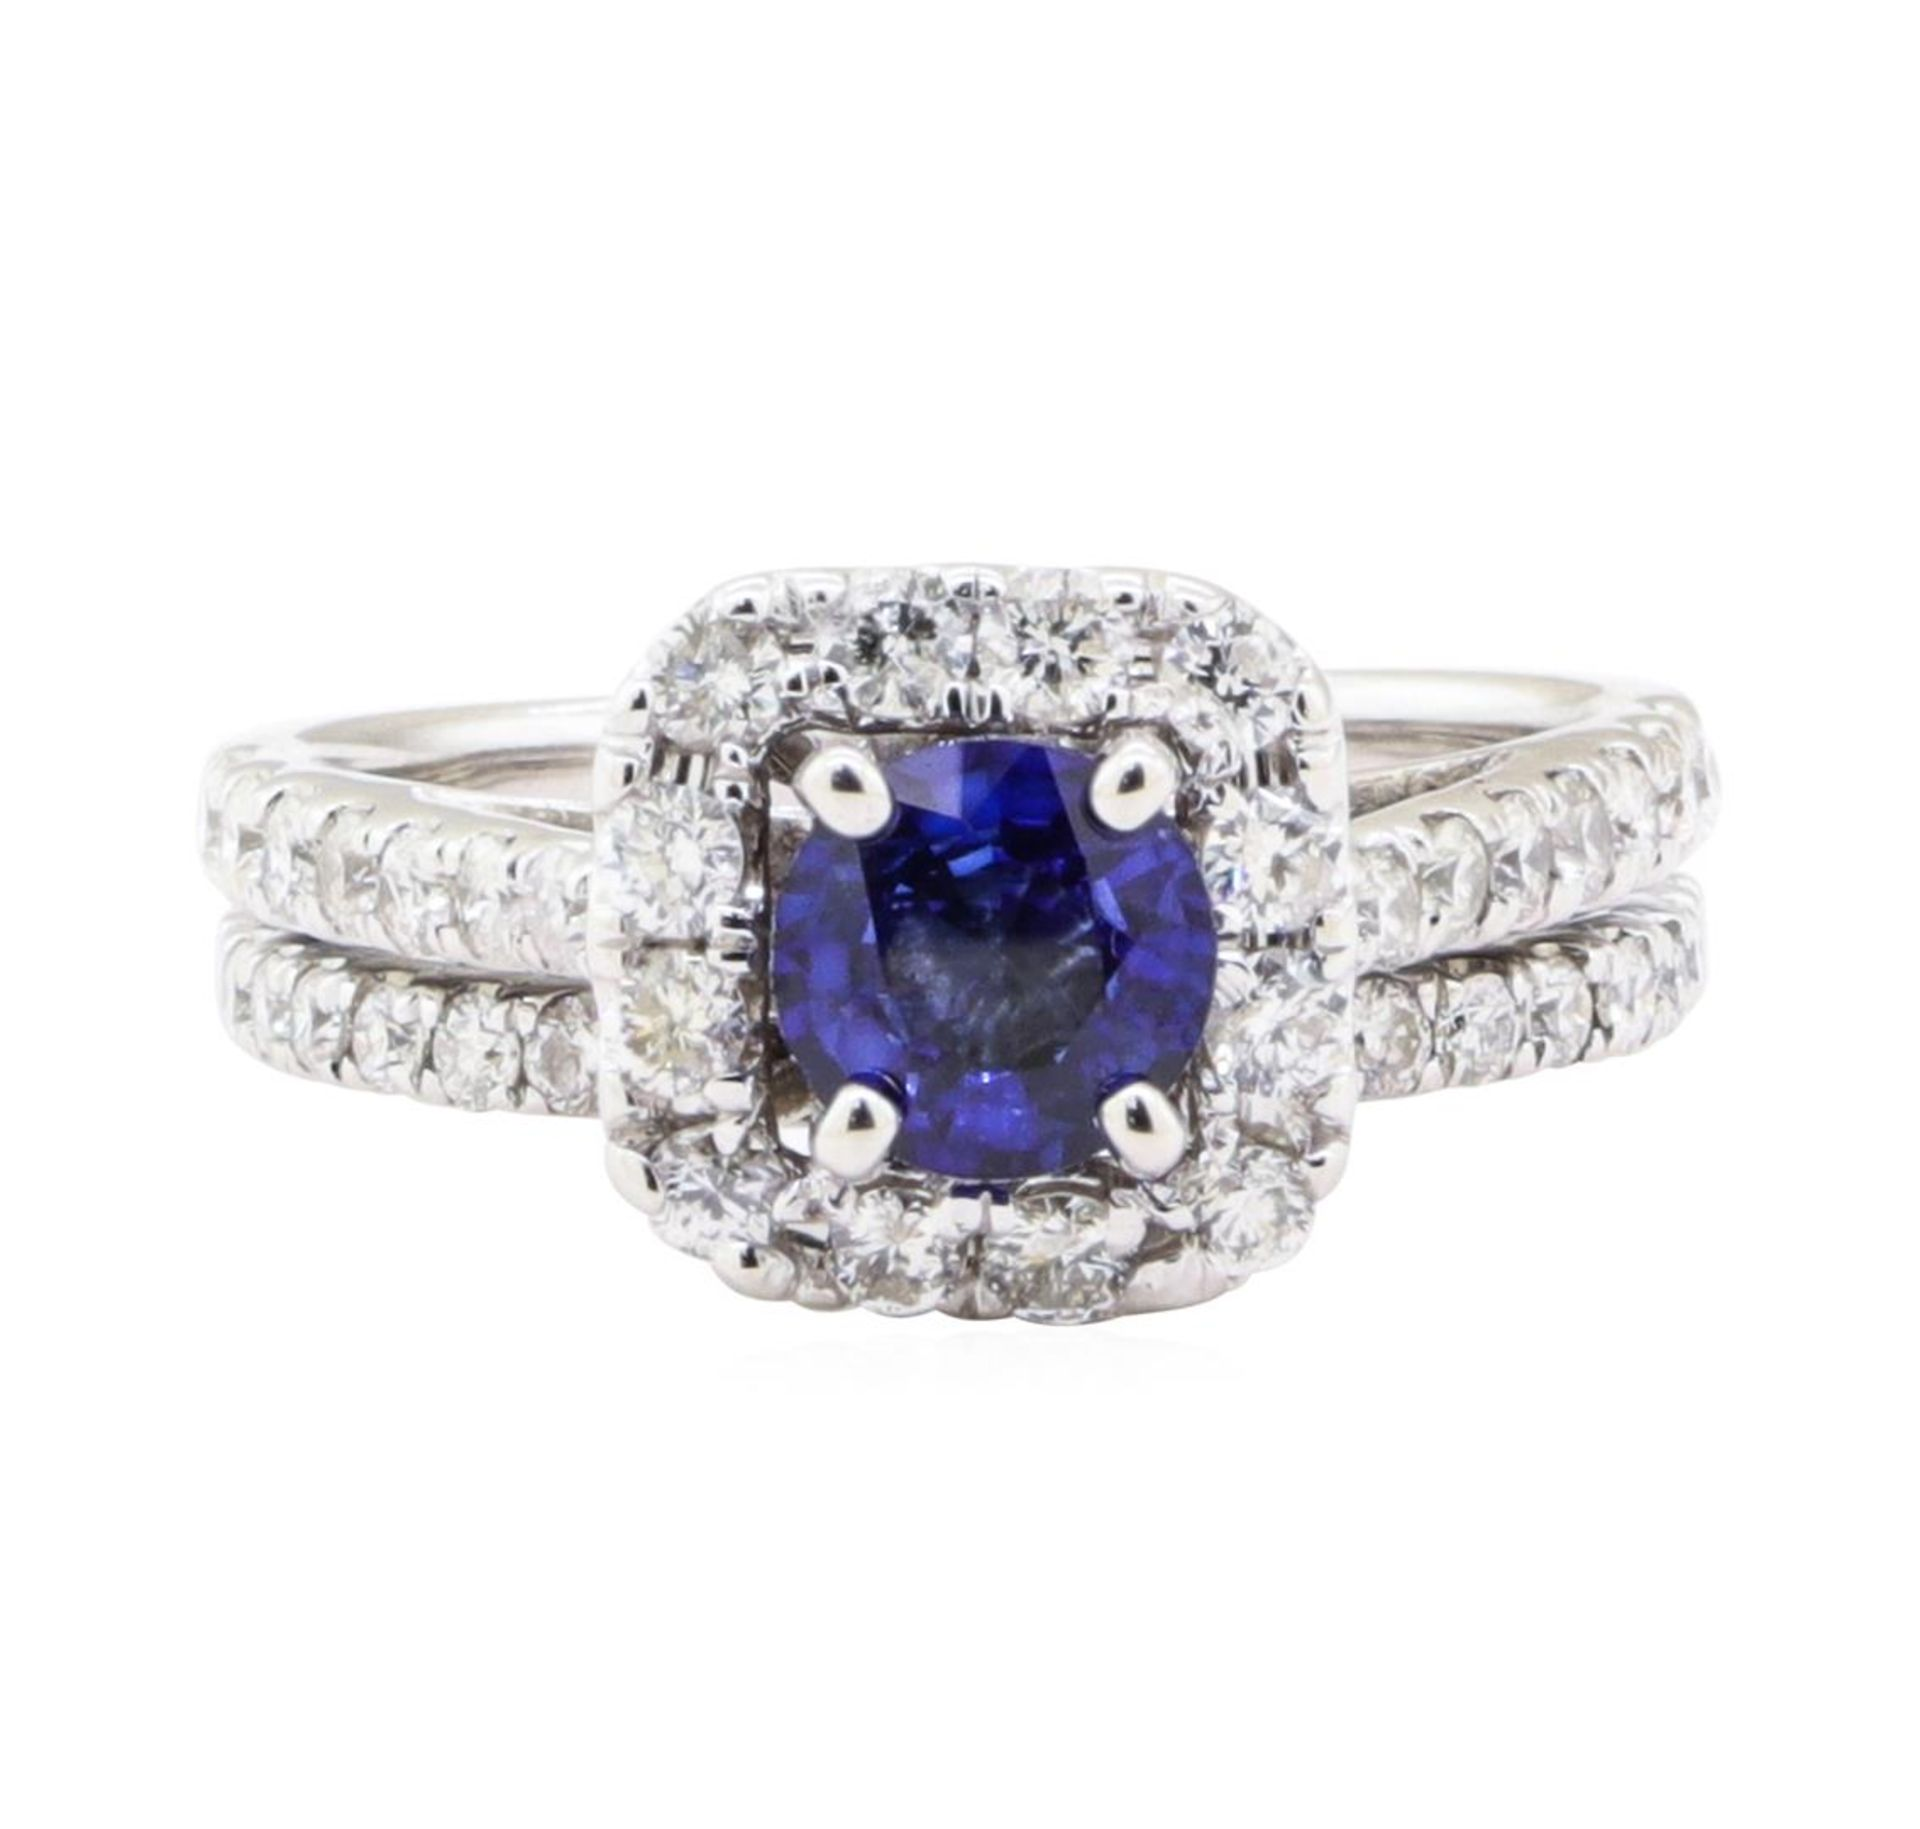 1.66 ctw Sapphire And Diamond Ring And Attached Band - 14KT White Gold - Image 2 of 5